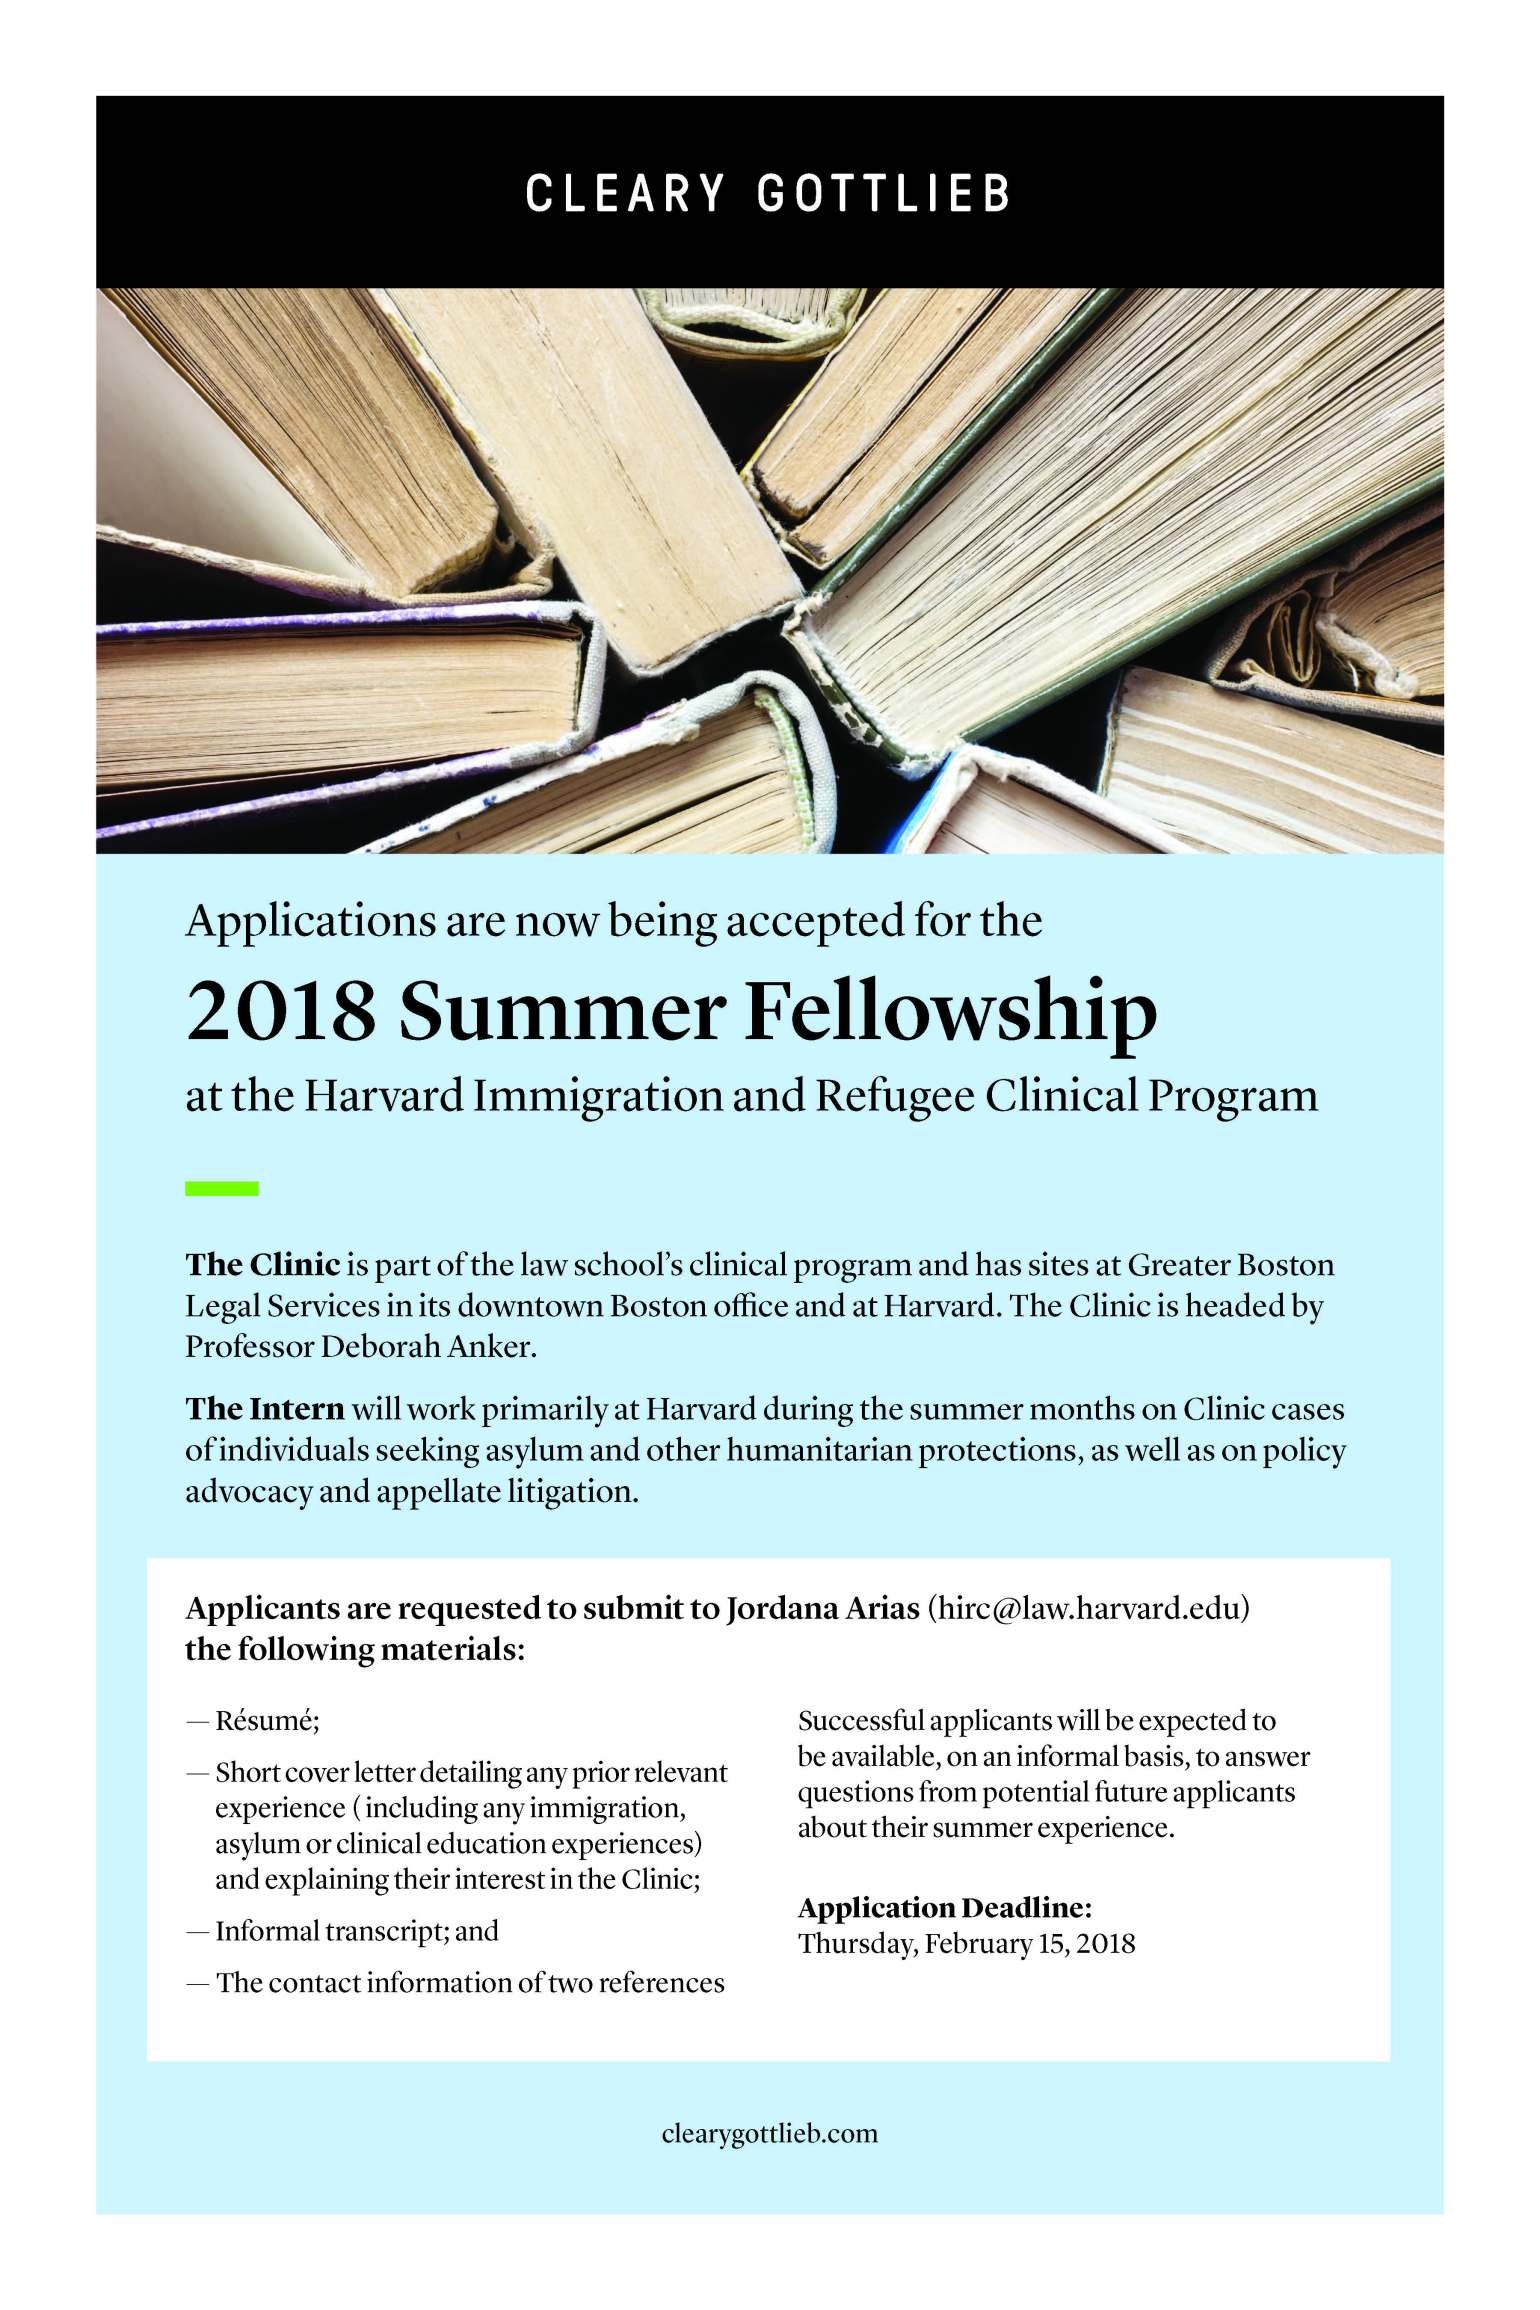 Harvard Immigration Fellowship Poster_R1